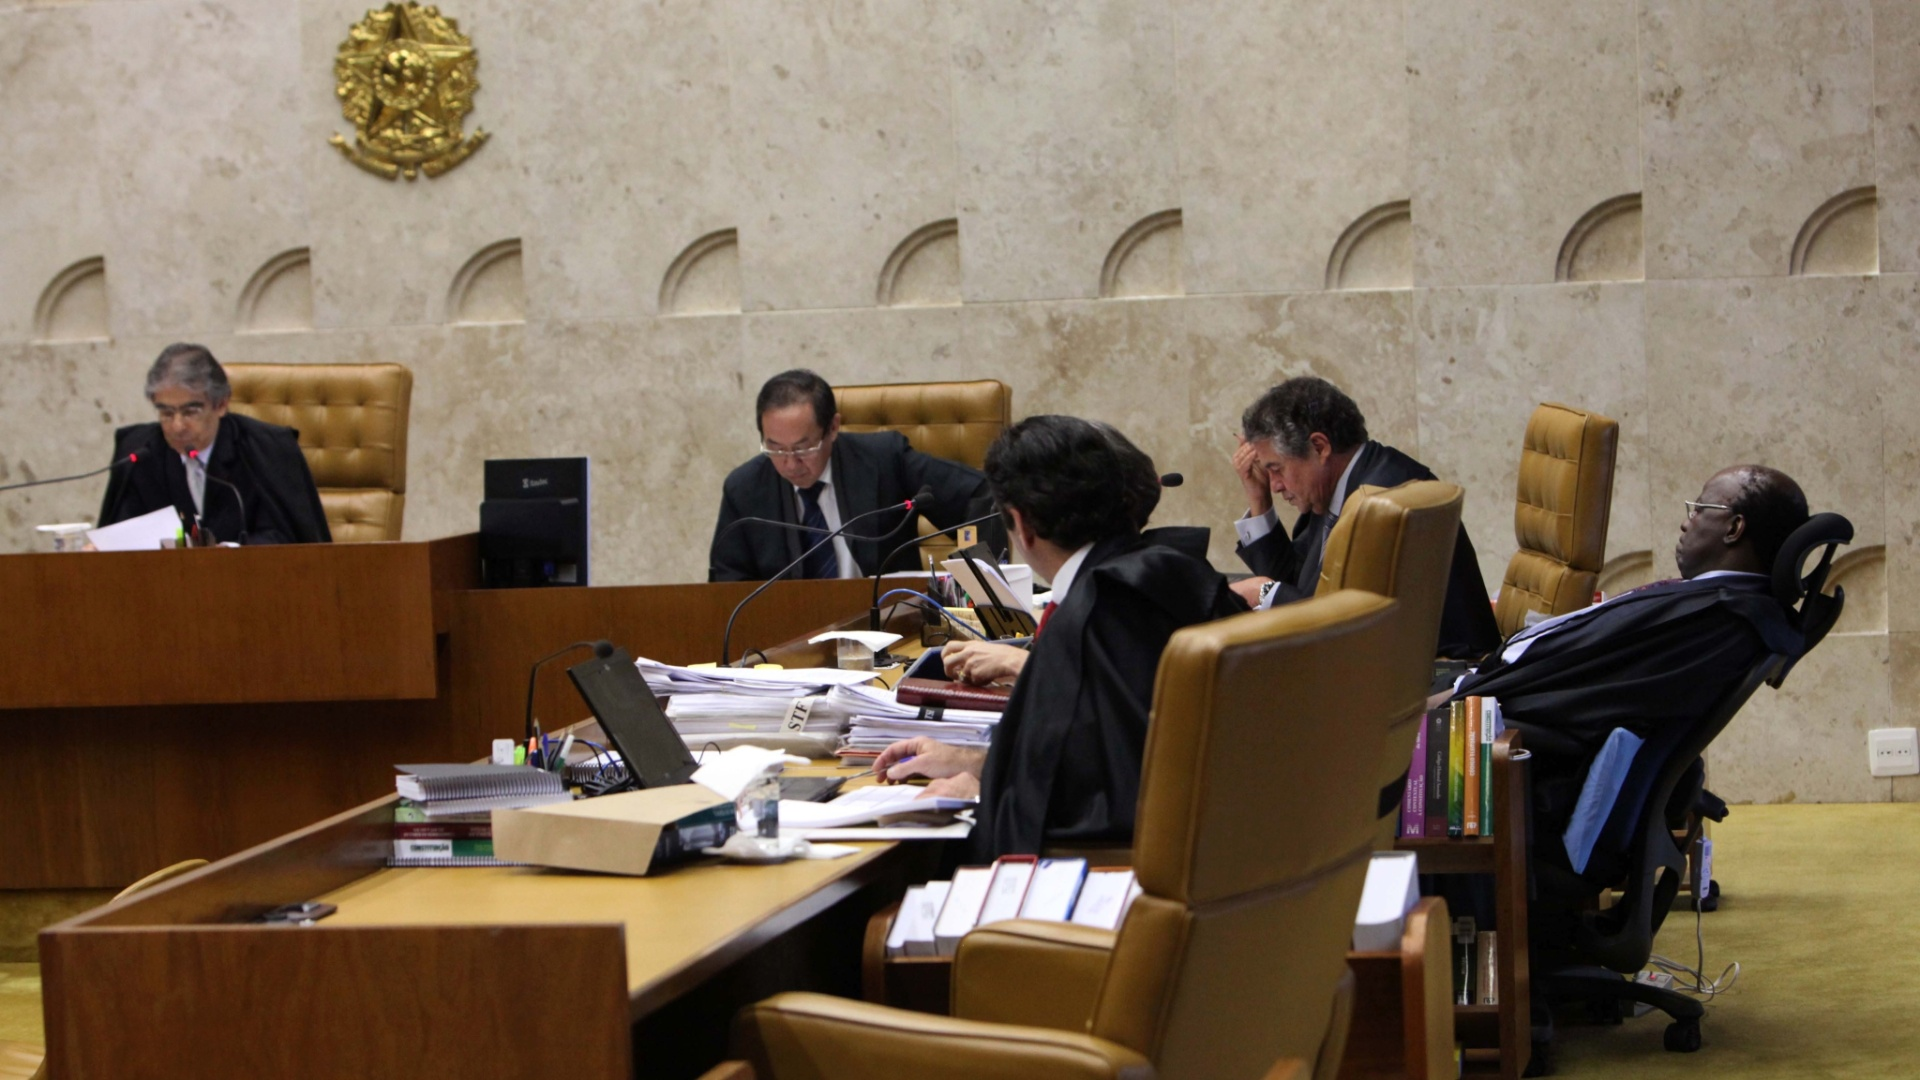 7.nov.2012 - Depois de quase duas semanas  de intervalo, ministros do STF acompanham a retomada do julgamento do mensalo, com a concluso da votao das penas a serem aplicadas a Ramon Hollerbach, ex-scio do publicitrio Marcos Valrio